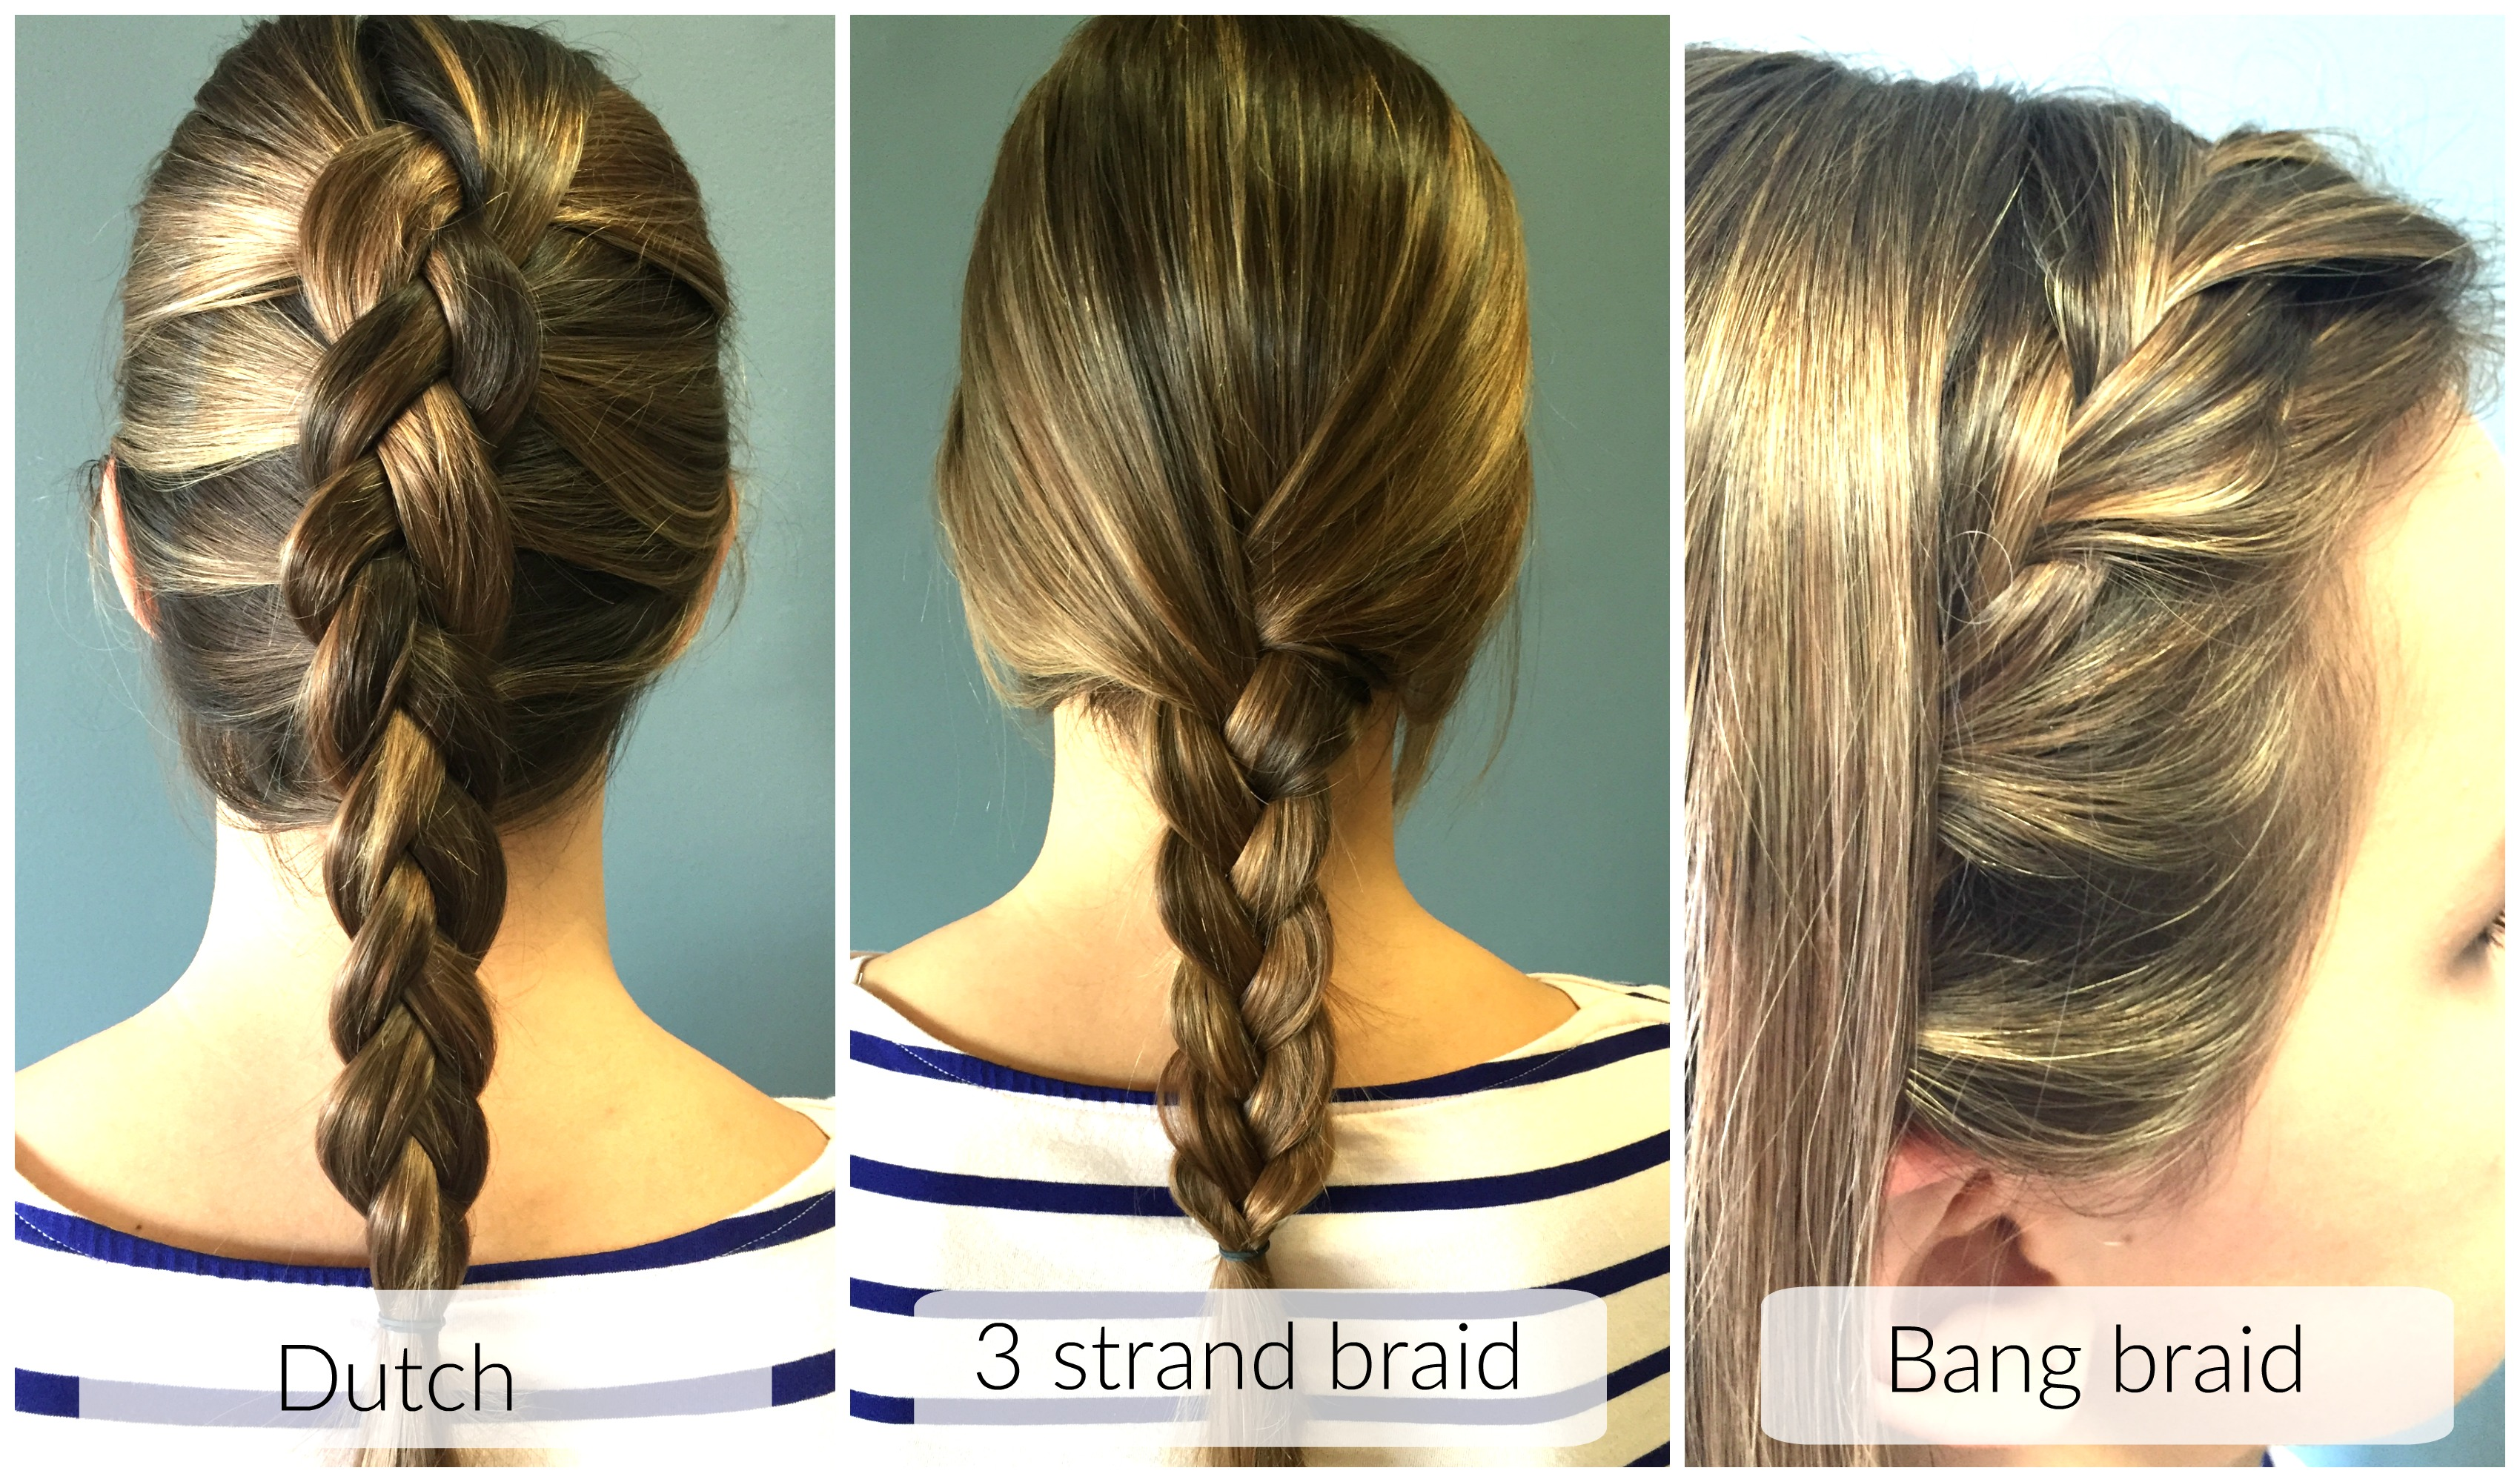 $17 braids group 2